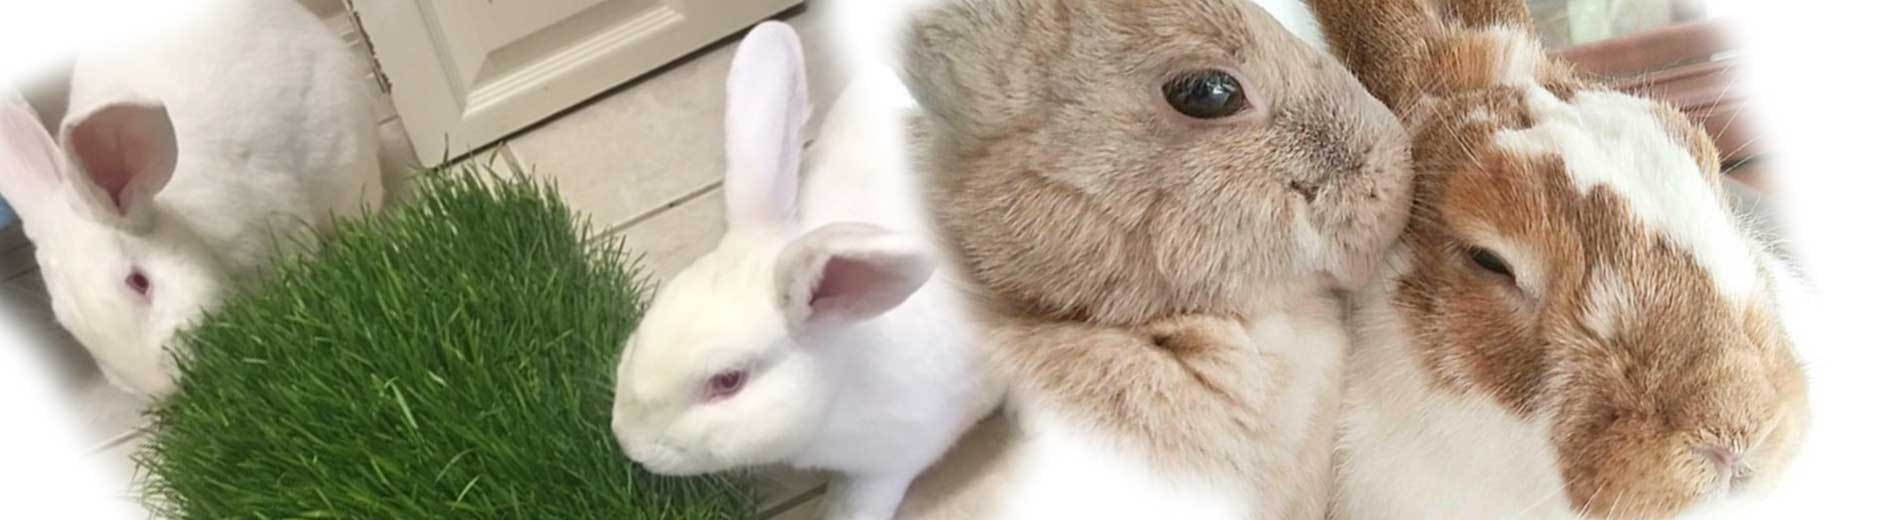 Picture of rabbits